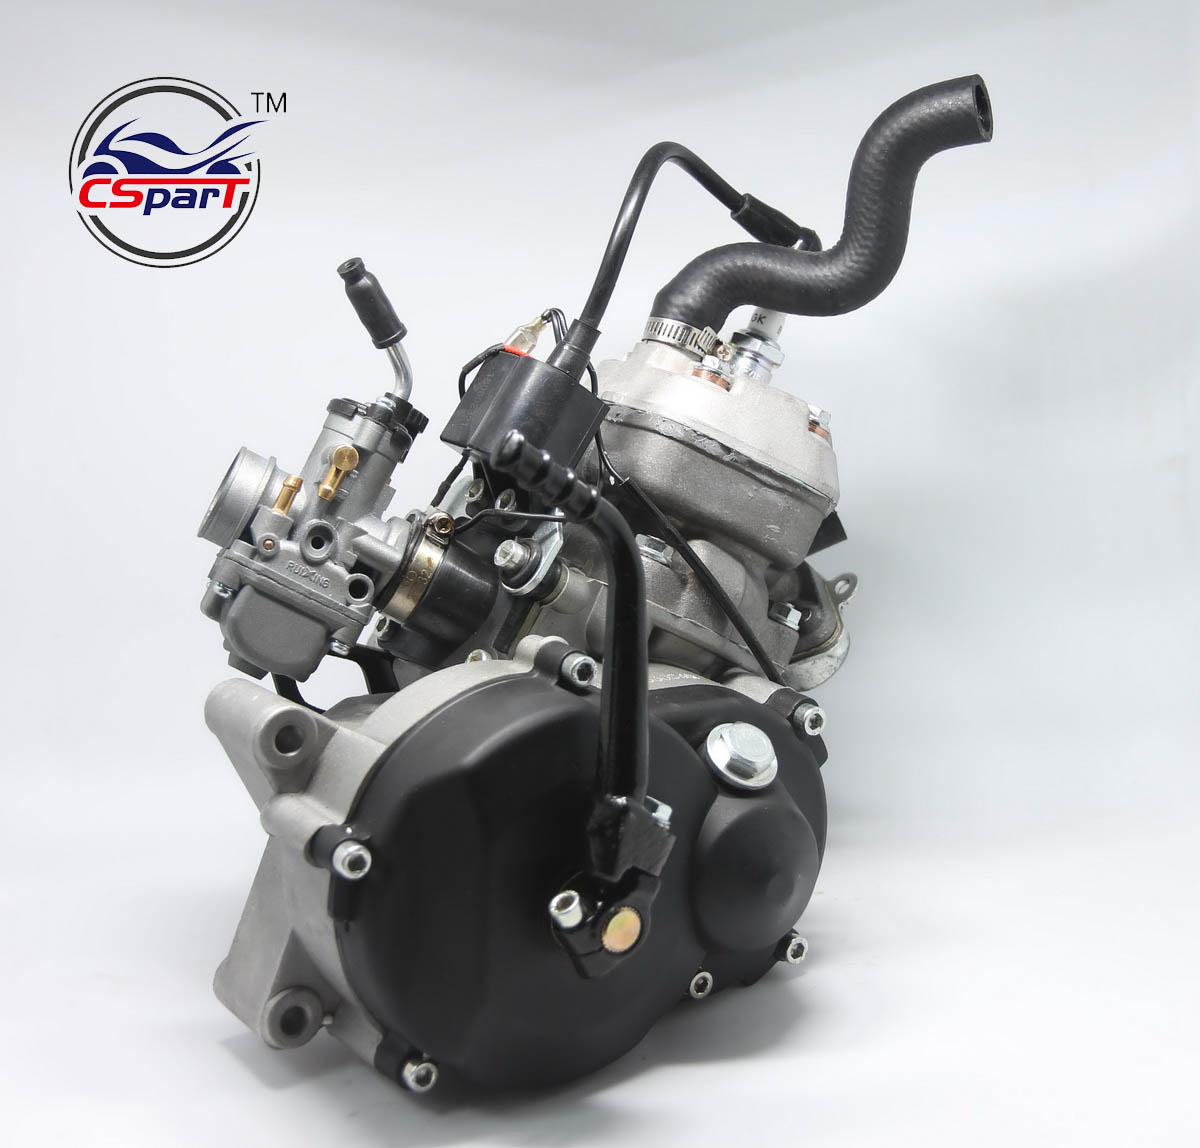 Incredible Us 380 0 65Cc Water Cooled Engine For 05 Ktm 65 Sx Pro Senior Dirt Pit Cross Bike In Engines From Automobiles Motorcycles On Aliexpress Forskolin Free Trial Chair Design Images Forskolin Free Trialorg